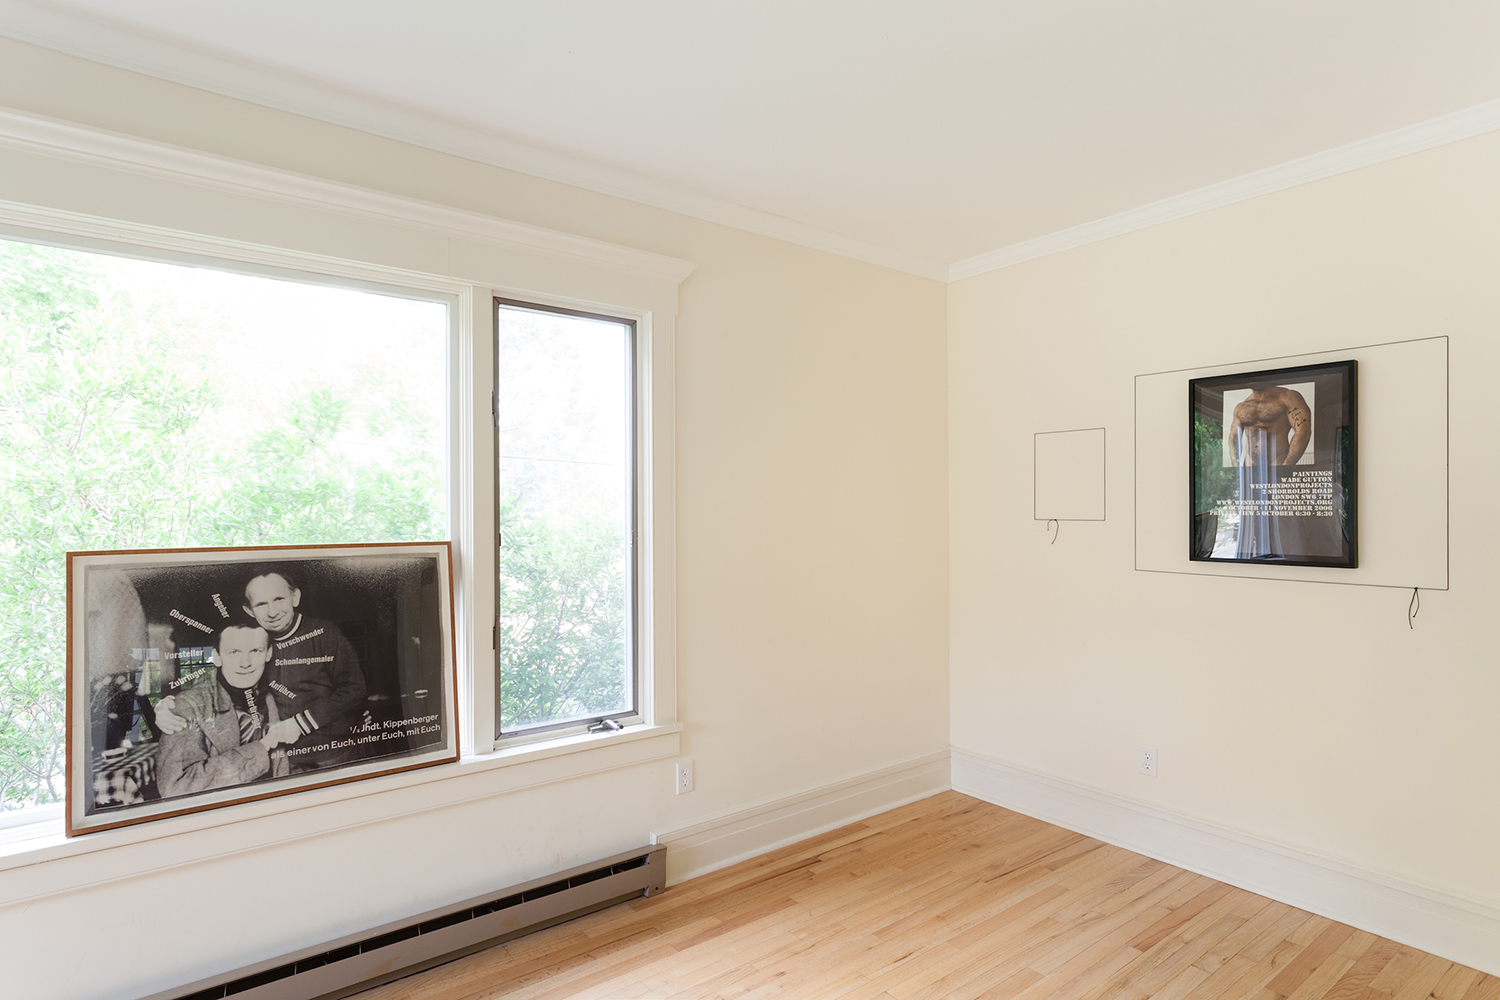 Organized project in collaboration with Kelley Walker, under the auspices of  Again, Once Again,Many Times More —curated by Bob Nickas, Martos Gallery, East Marion, NY, 2014.    Martin Kippenberger, Stephen Prina, and Wade Guyton